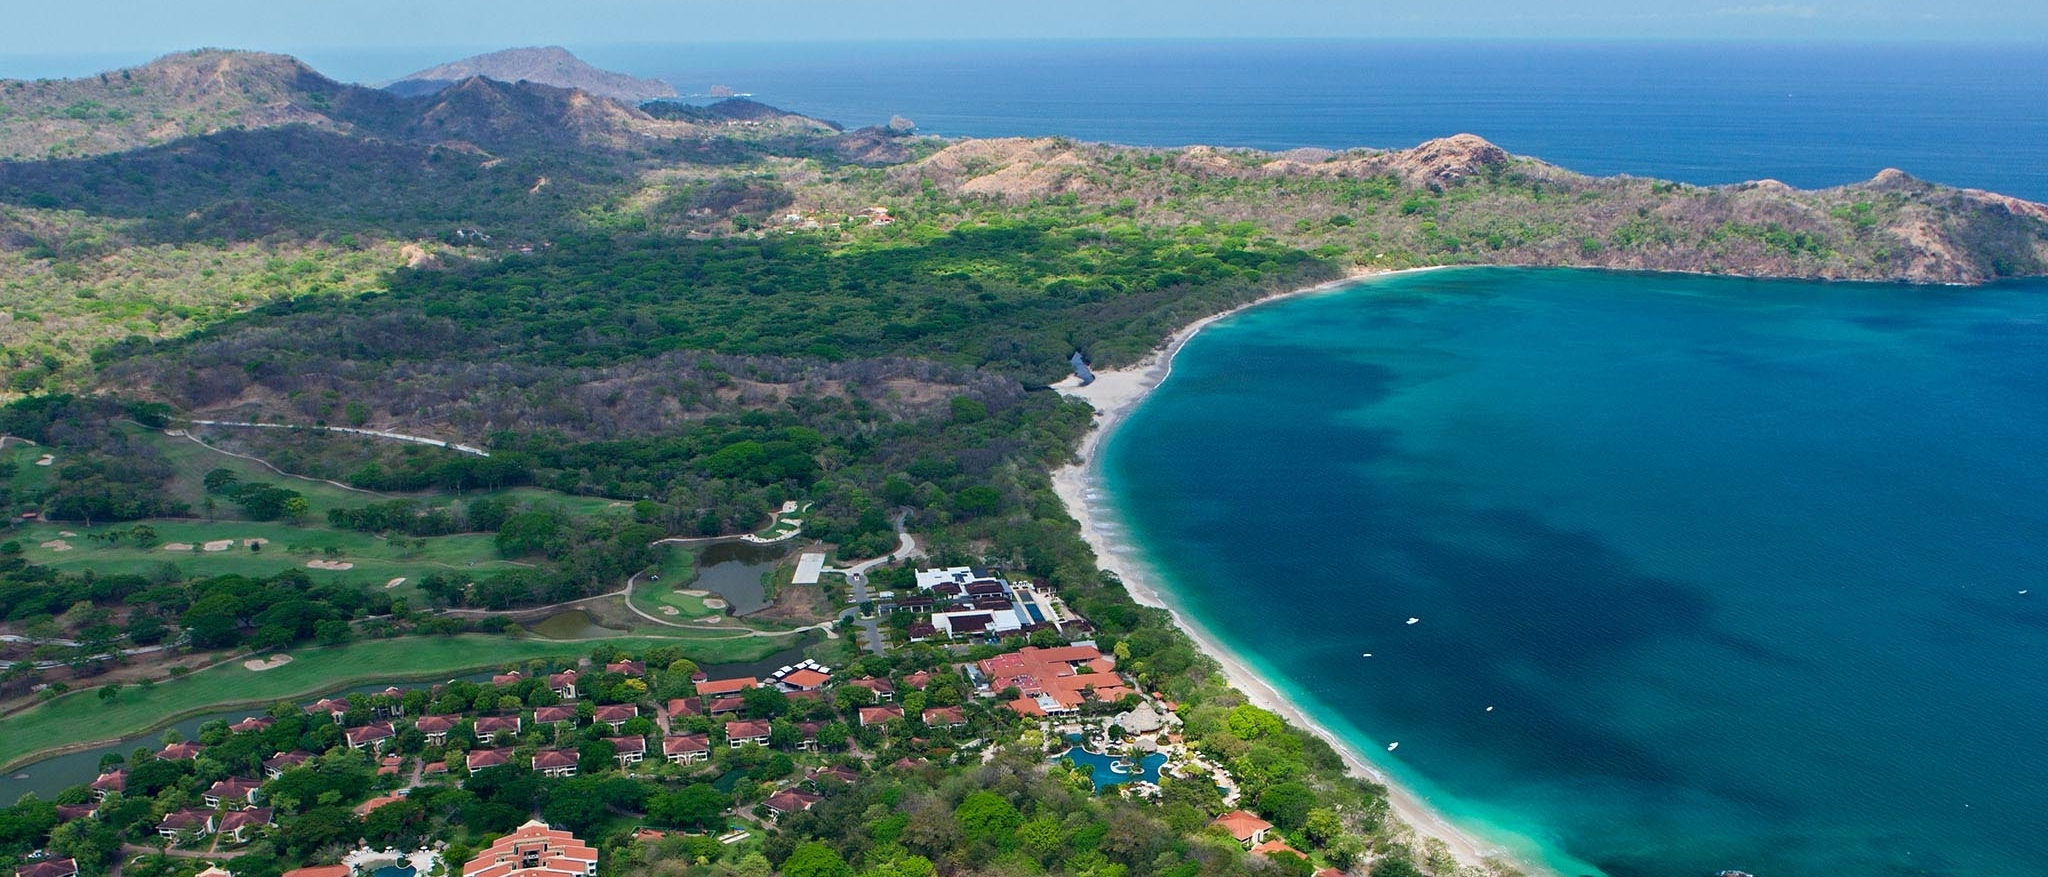 The Westin Golf Resort & Spa, Playa Conchal Costa Rica-Aerial View